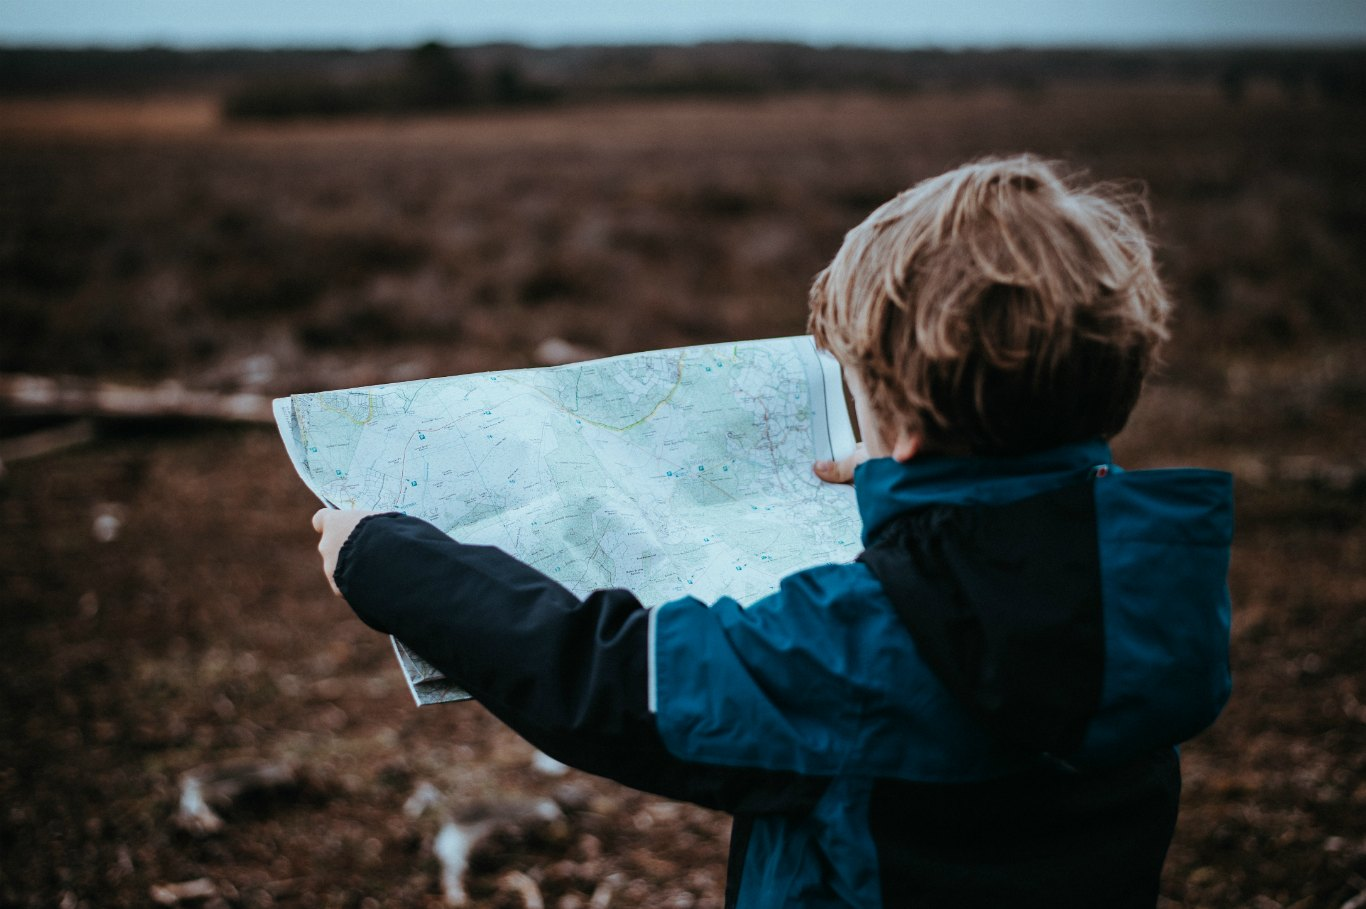 Using Personal Maps to Better Get to Know Your Students